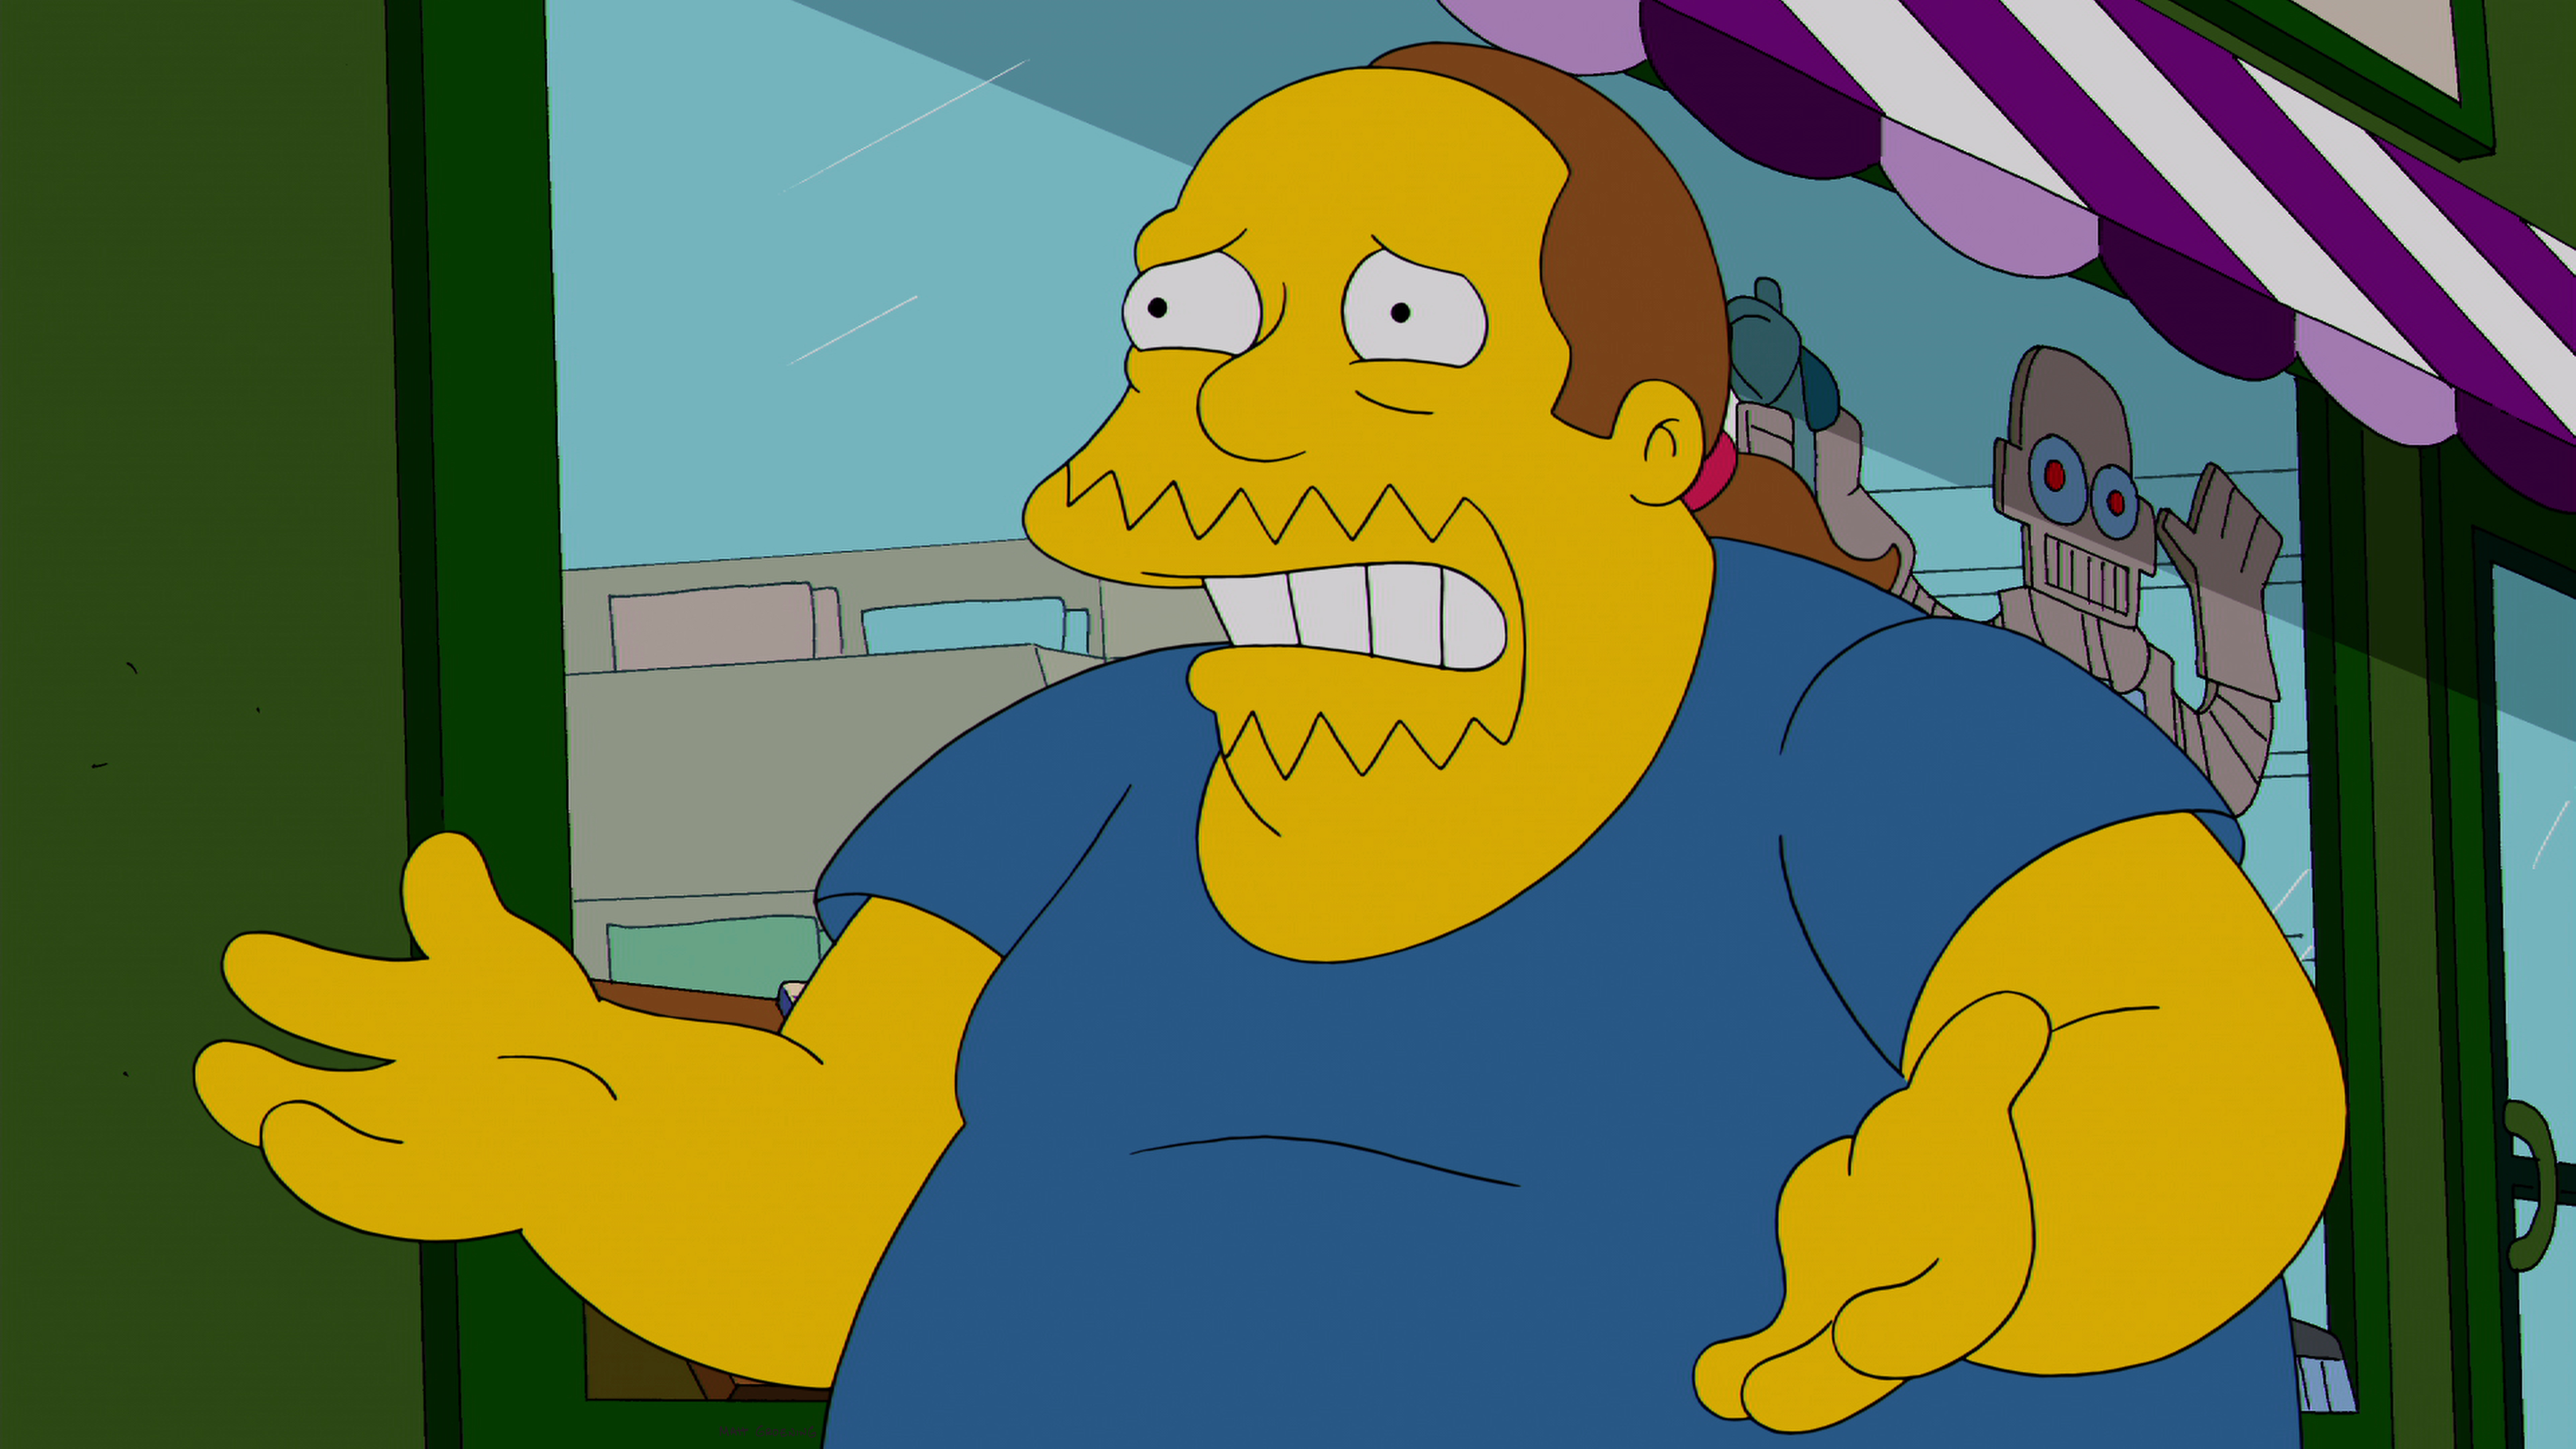 Comic Book Guy of The Simpsons